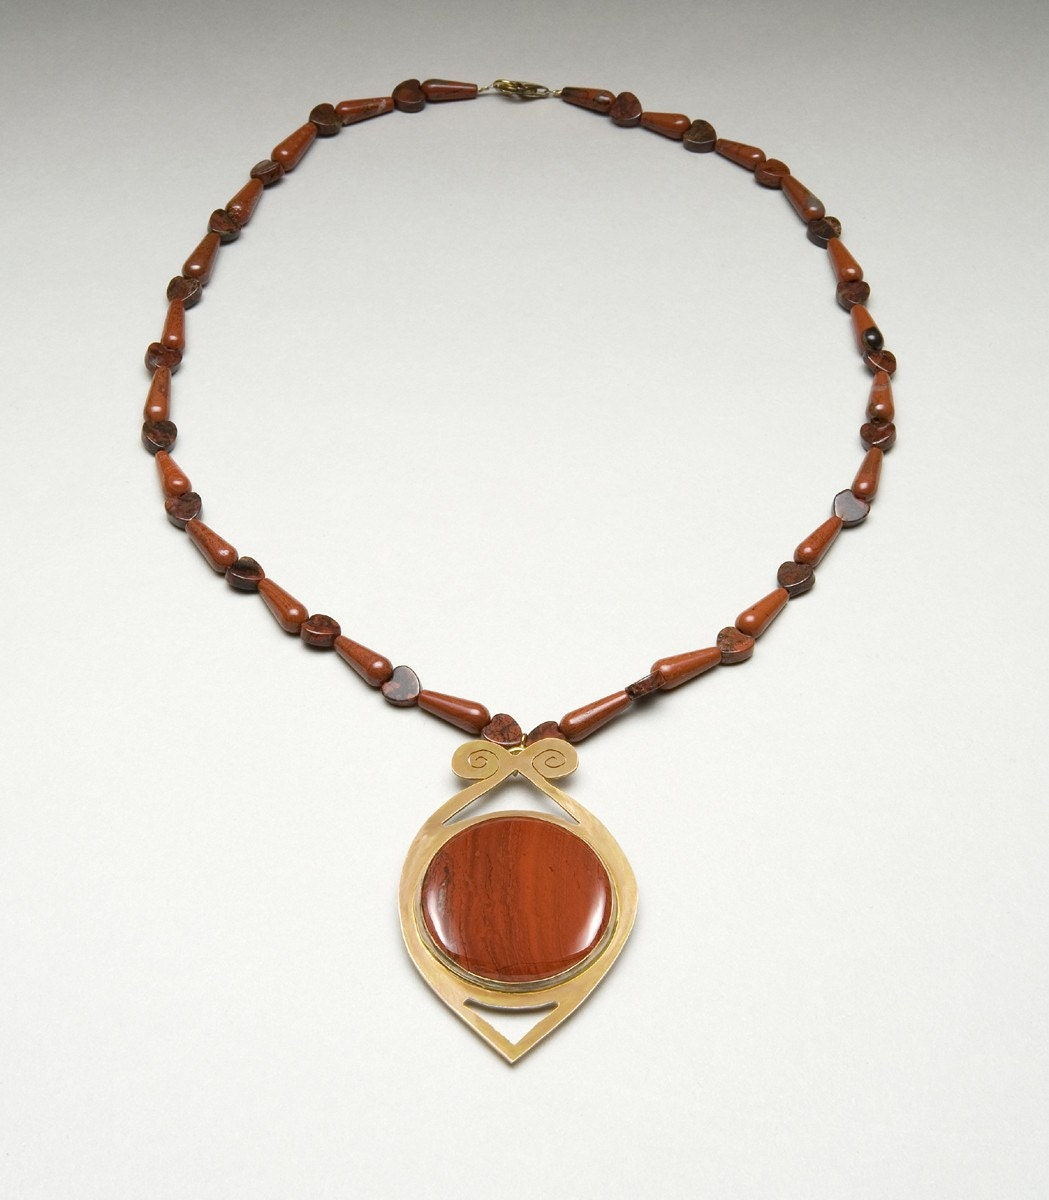 14k Gold-filled Red Jasper Pendant Pin Necklace